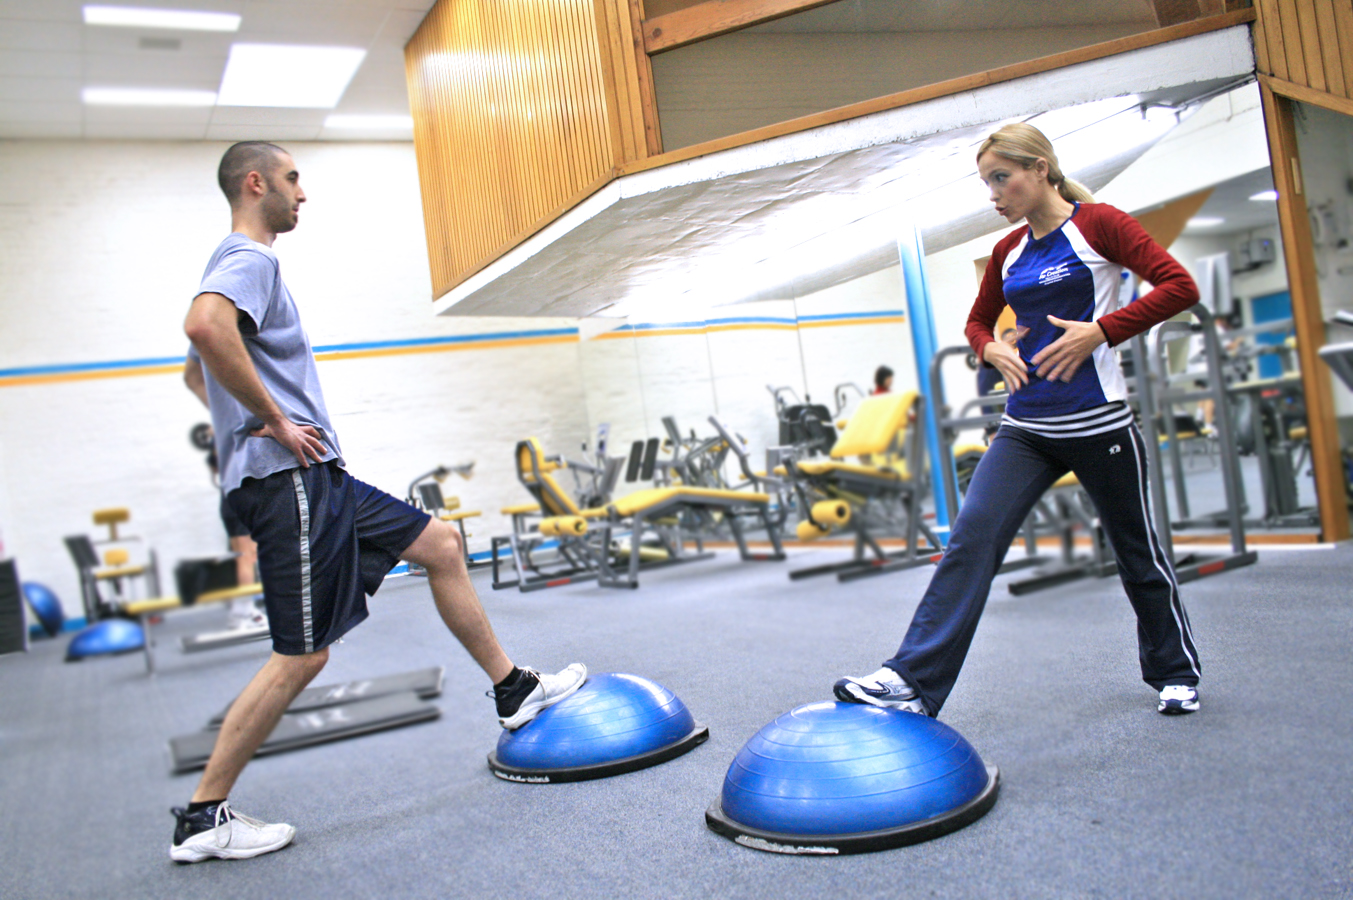 Two_people_in_a_gym_using_BOSU_balls